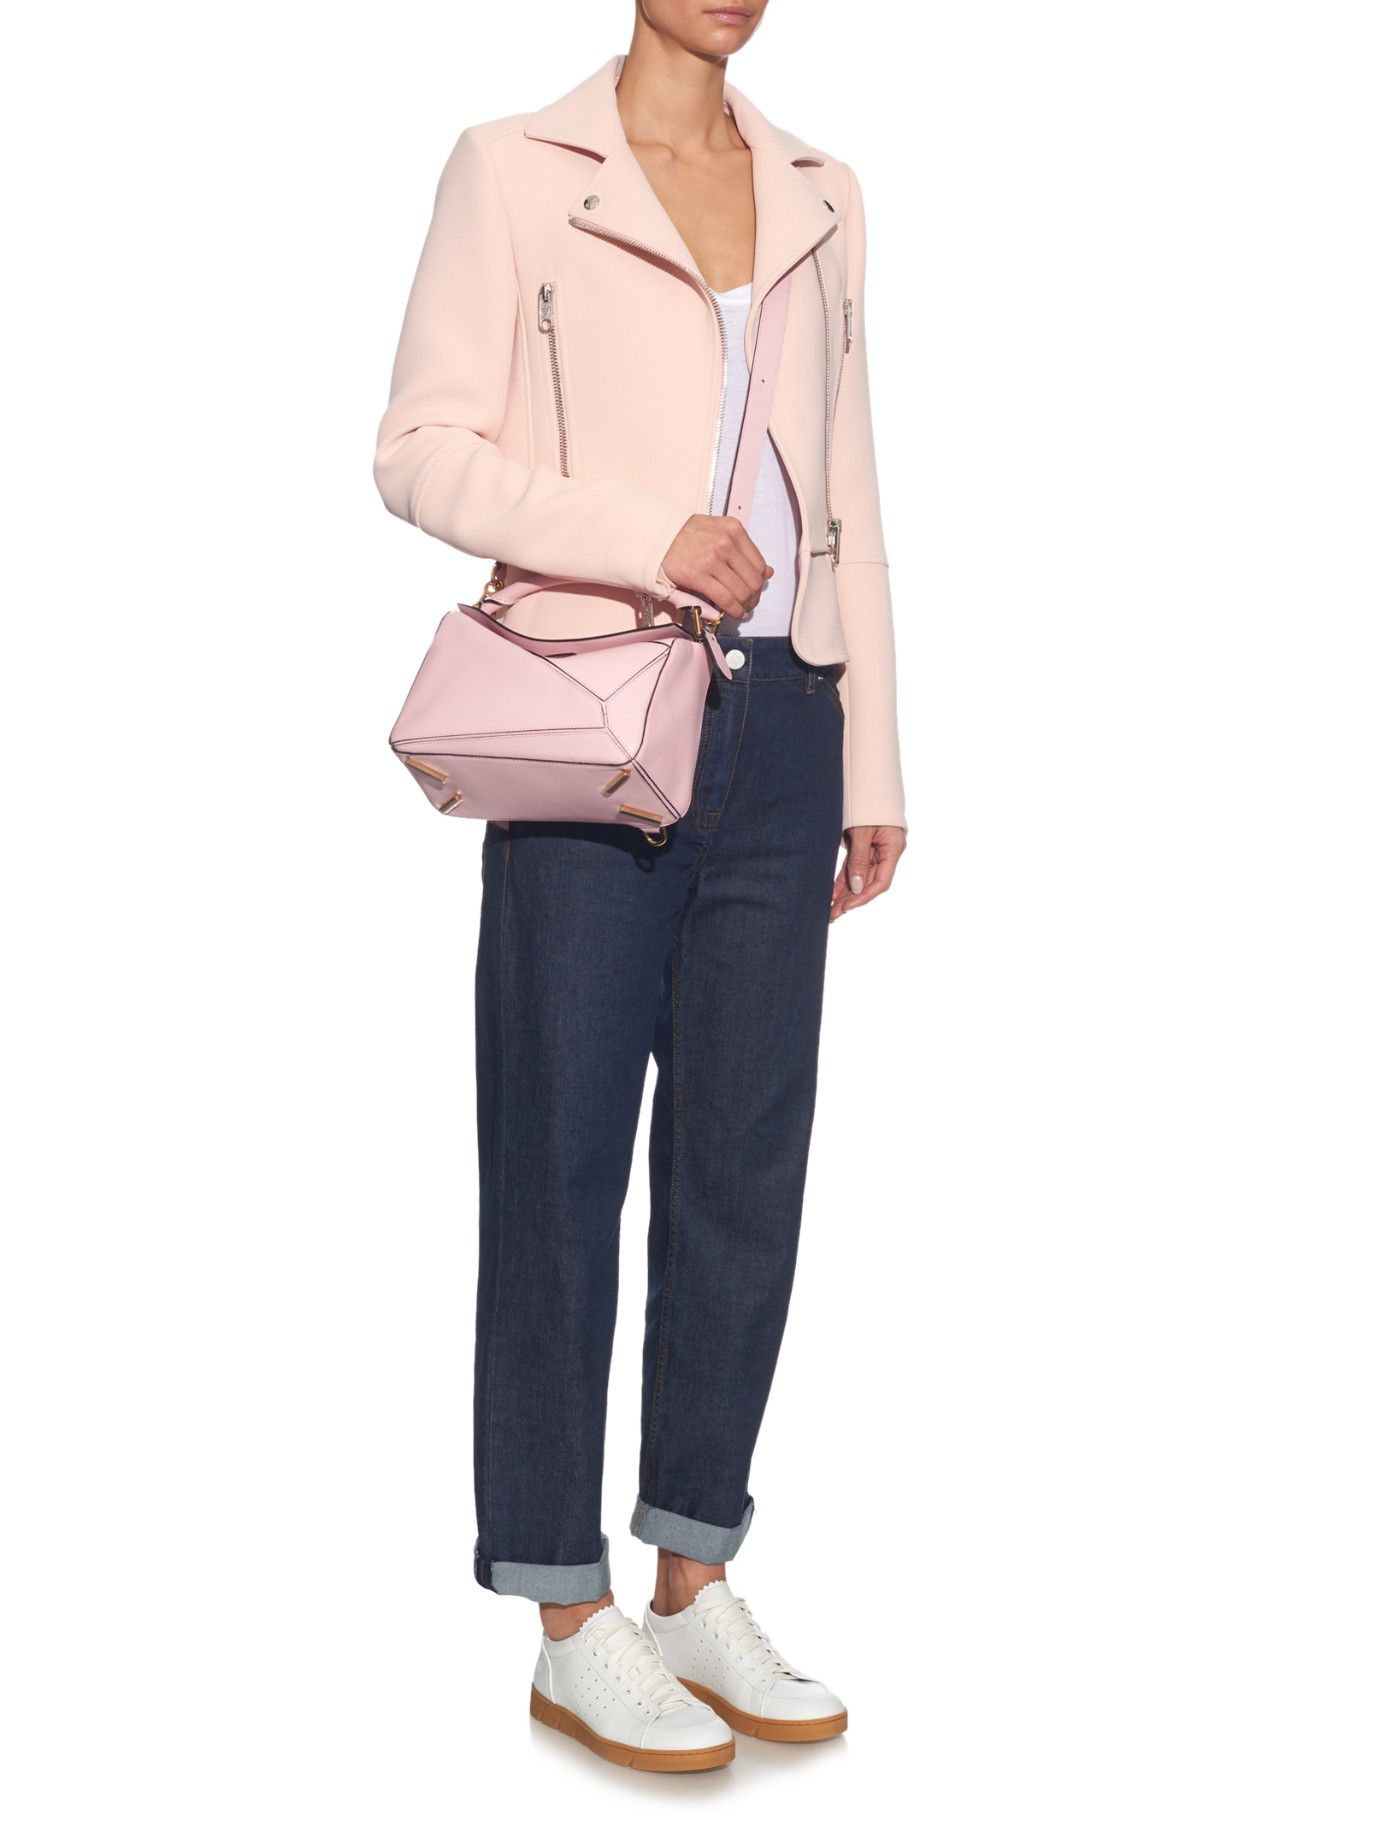 Lyst Loewe Puzzle Small Leather Bag In Pink